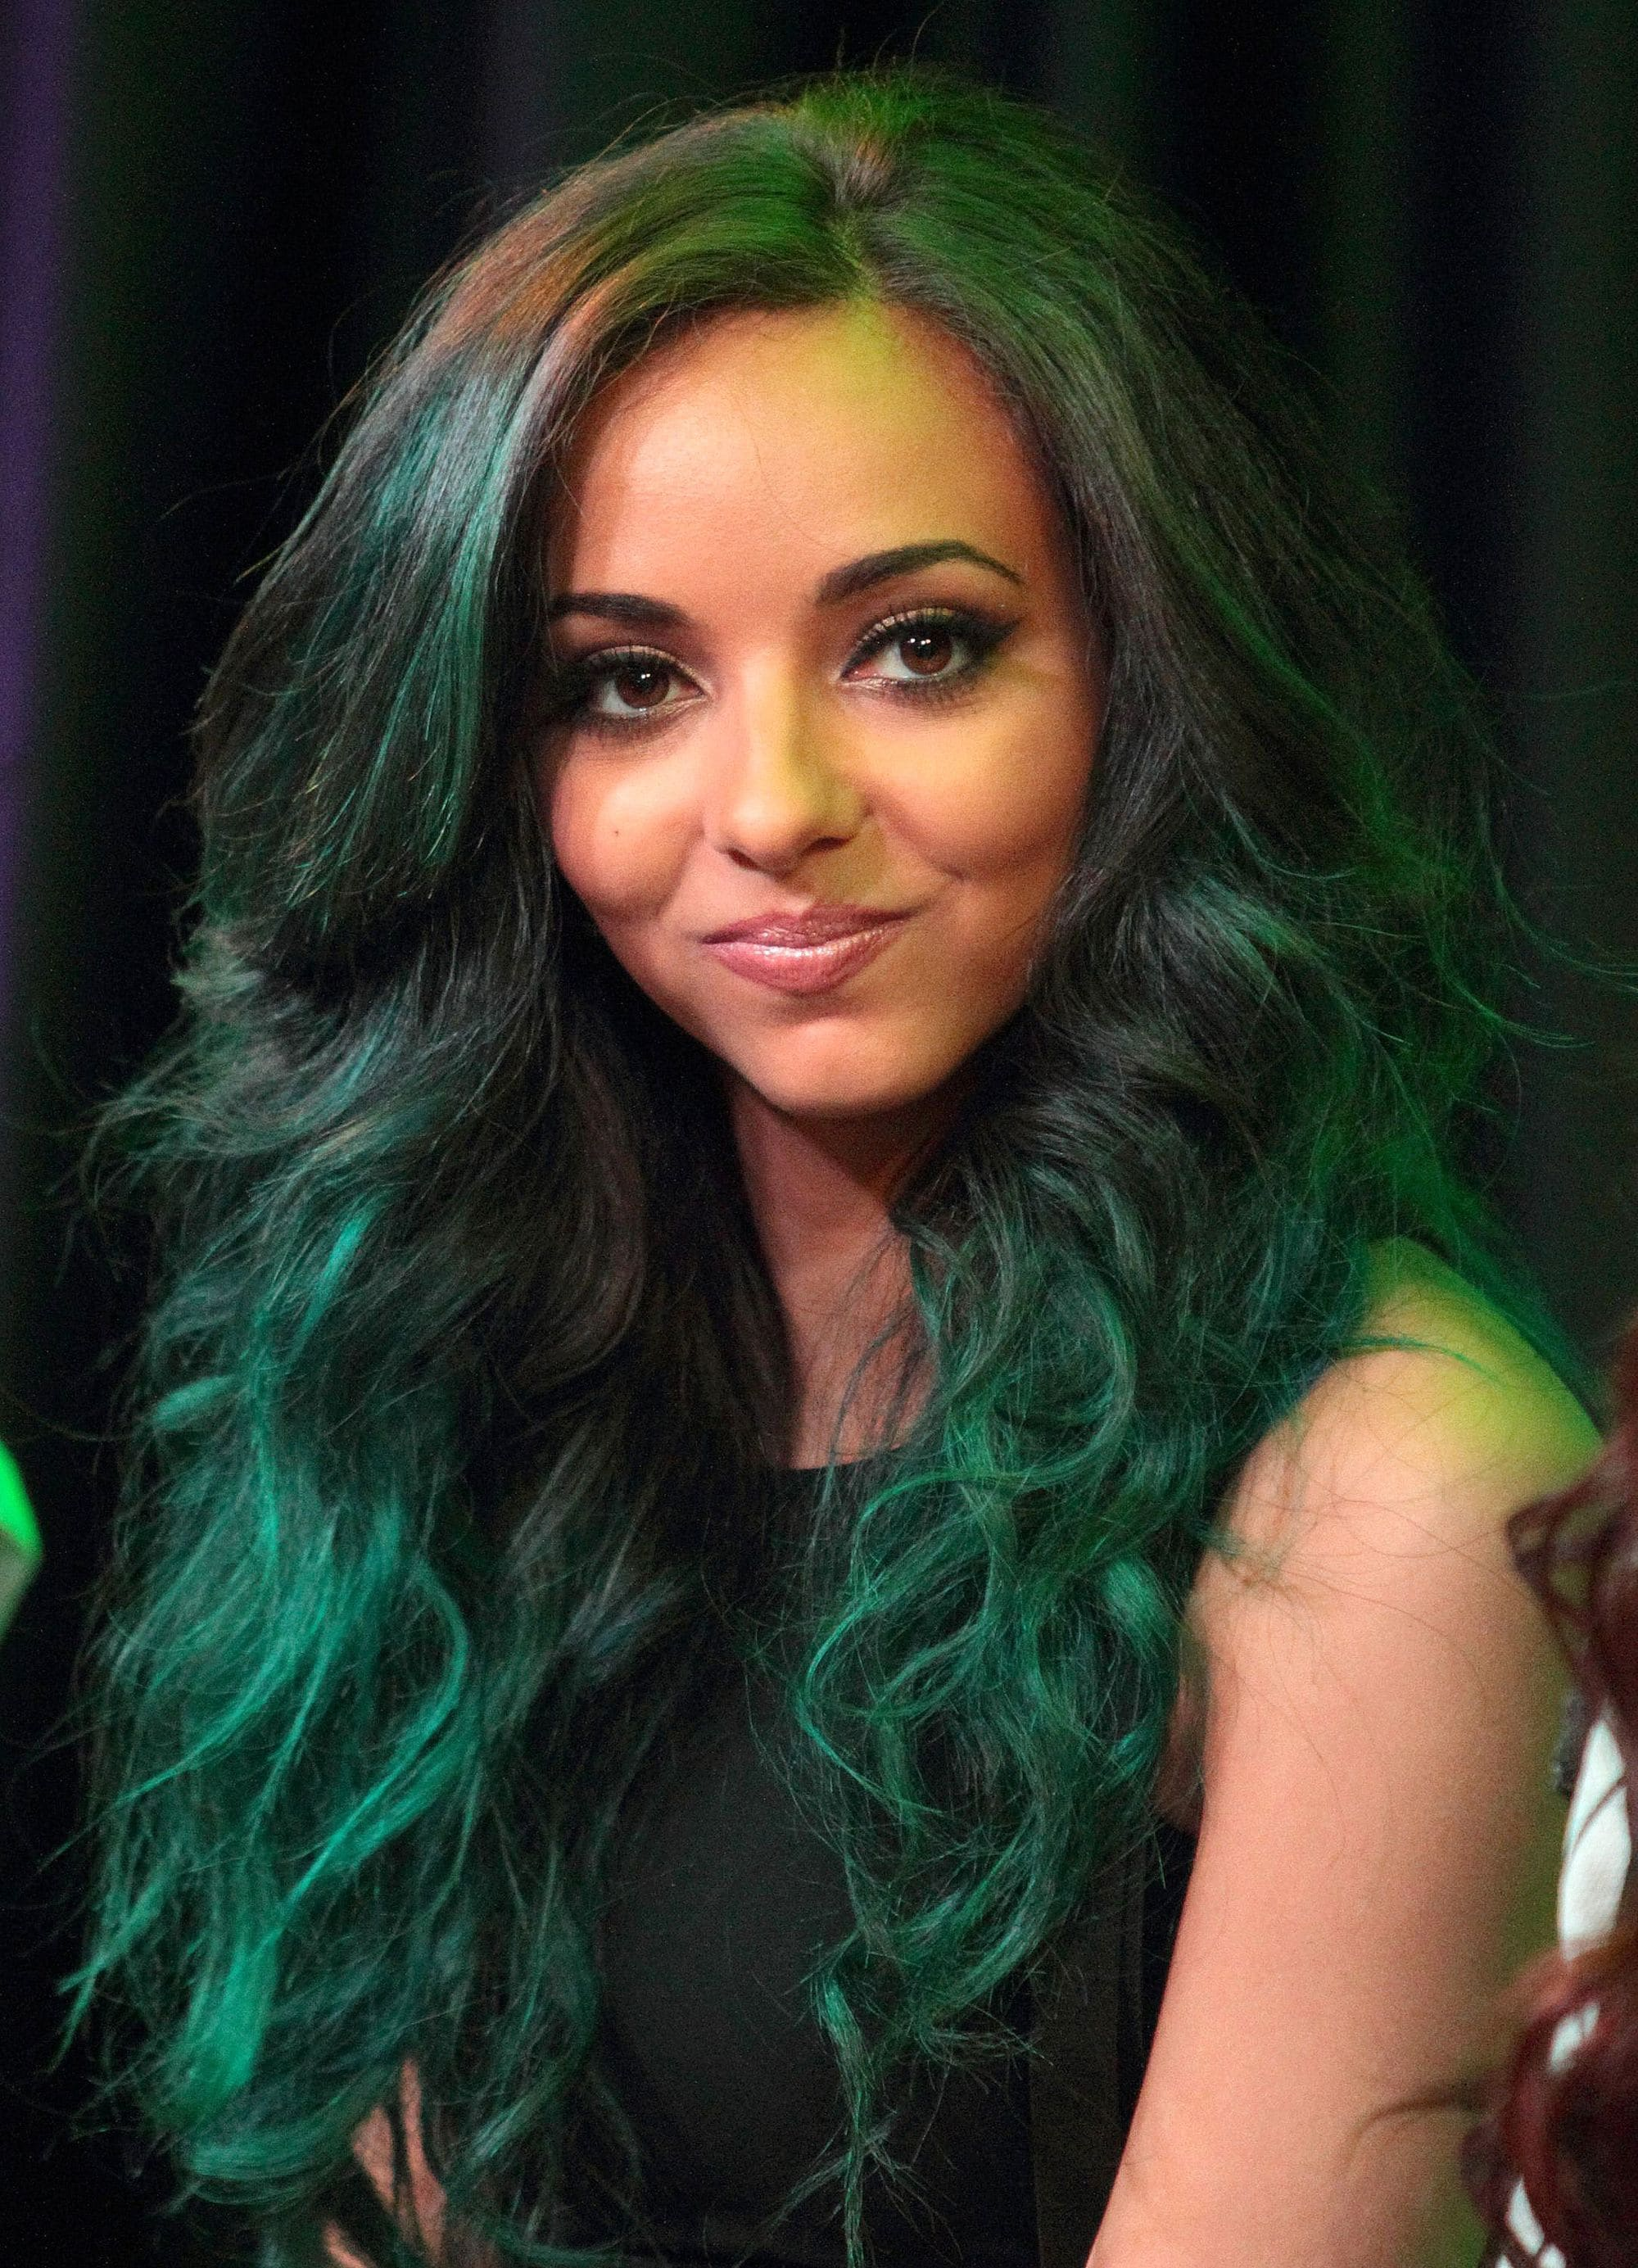 Green hair: Little Mix singer Jade Thirlwall with long curly green hair wearing black